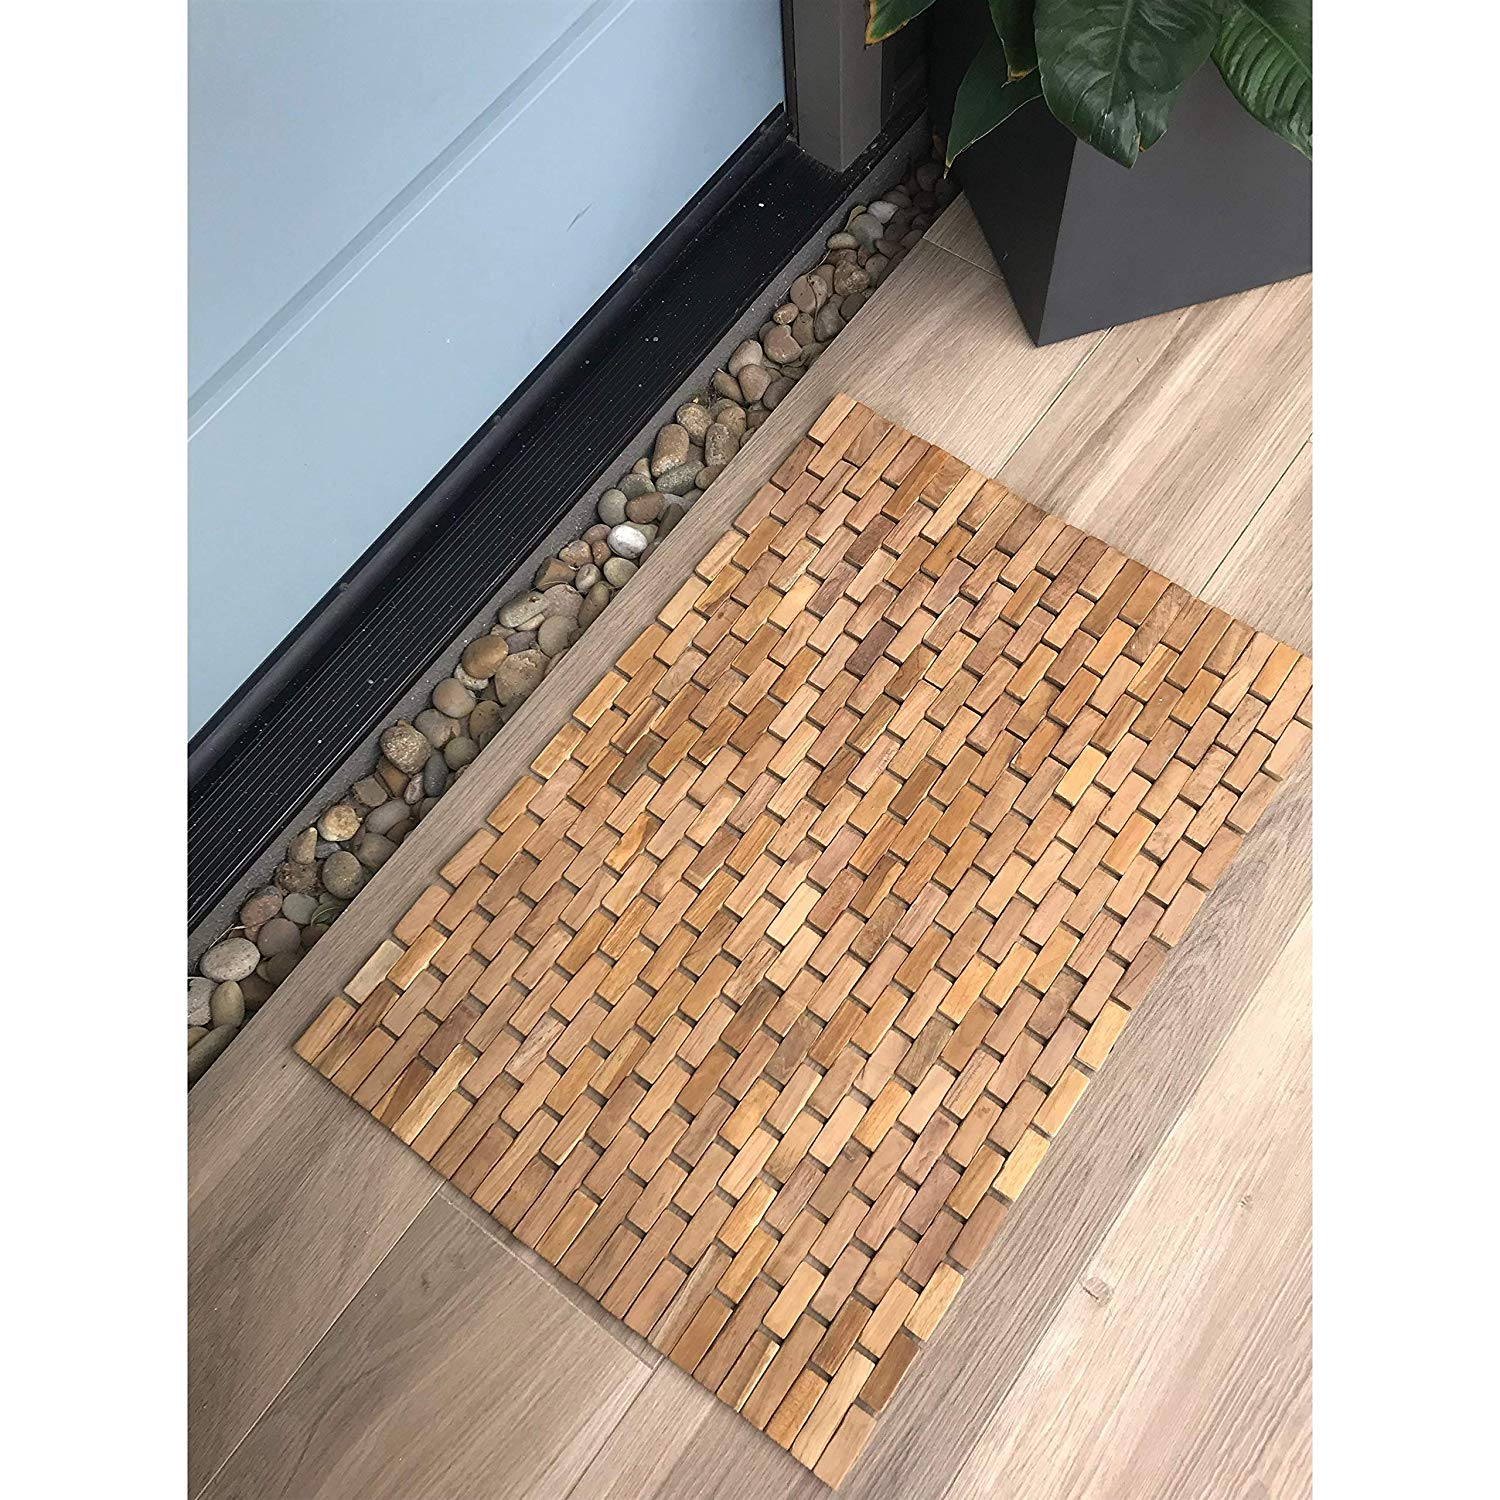 "Large Teak Wood Bath Mat L Size Teak Floor Mat Bathroom Indoor Outdoor Bath Rug Non Slip Shower Mat Brown 27 5"" X 19 5"""